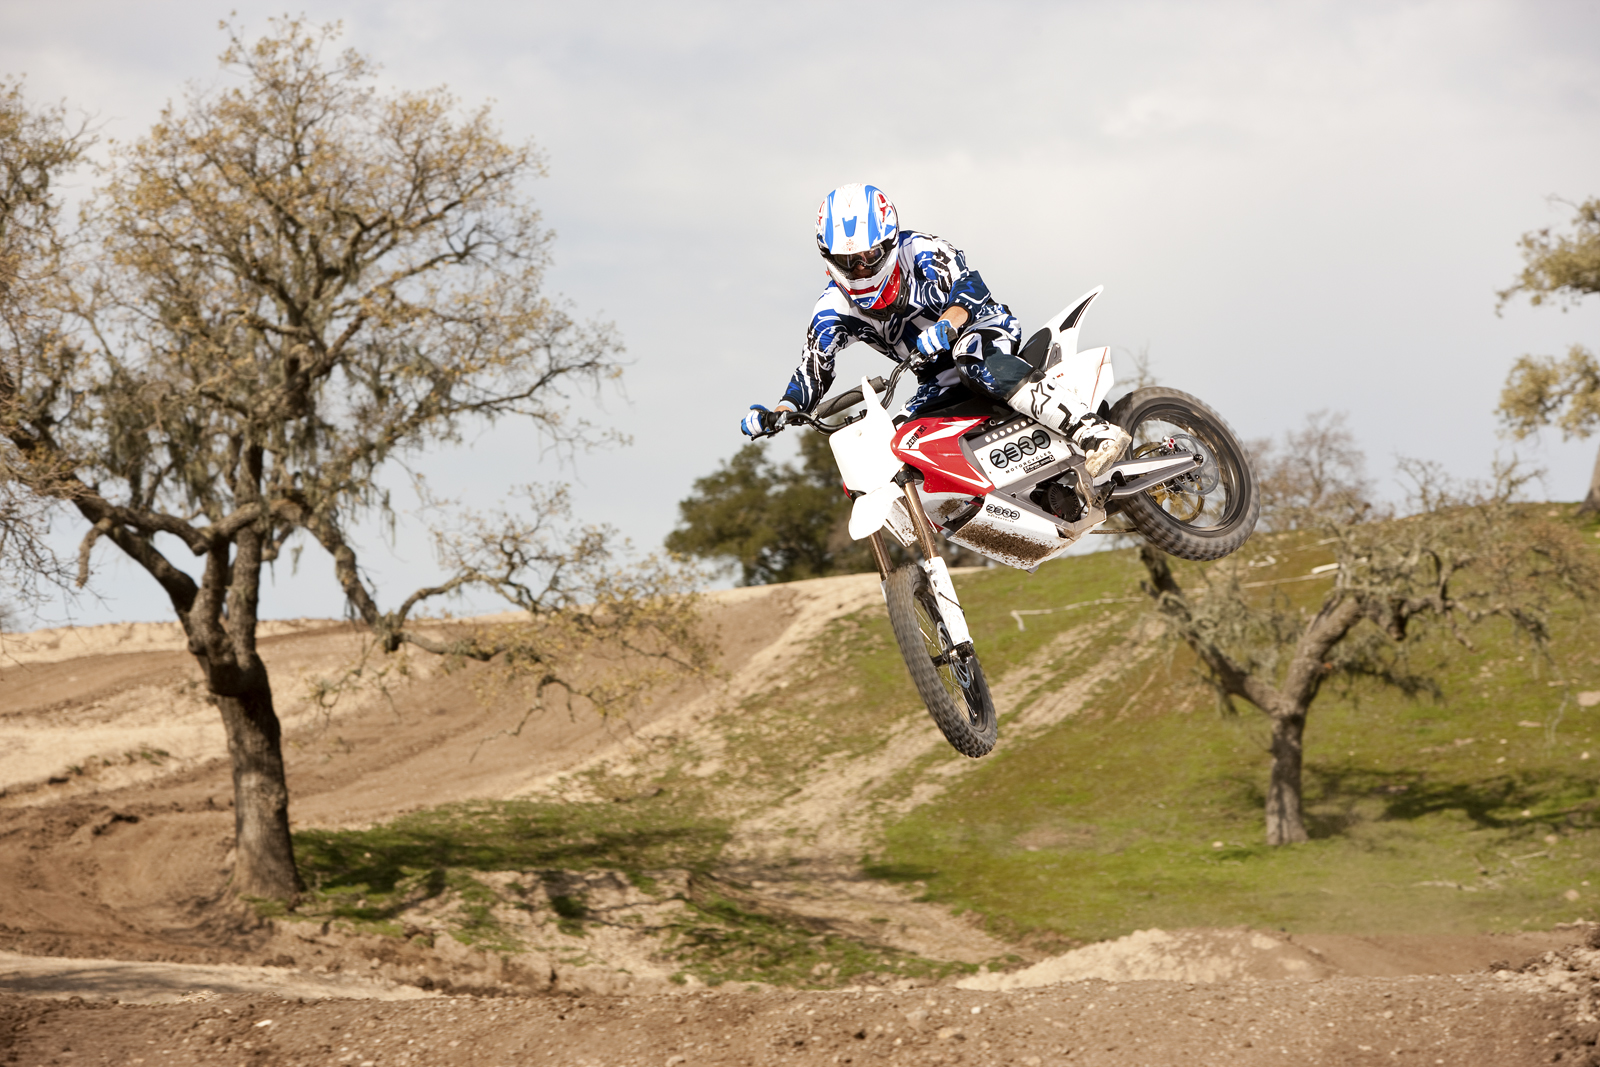 '.2010 Zero MX Electric Motorcycle: Zaca Station - Little Red Bike Jump.'